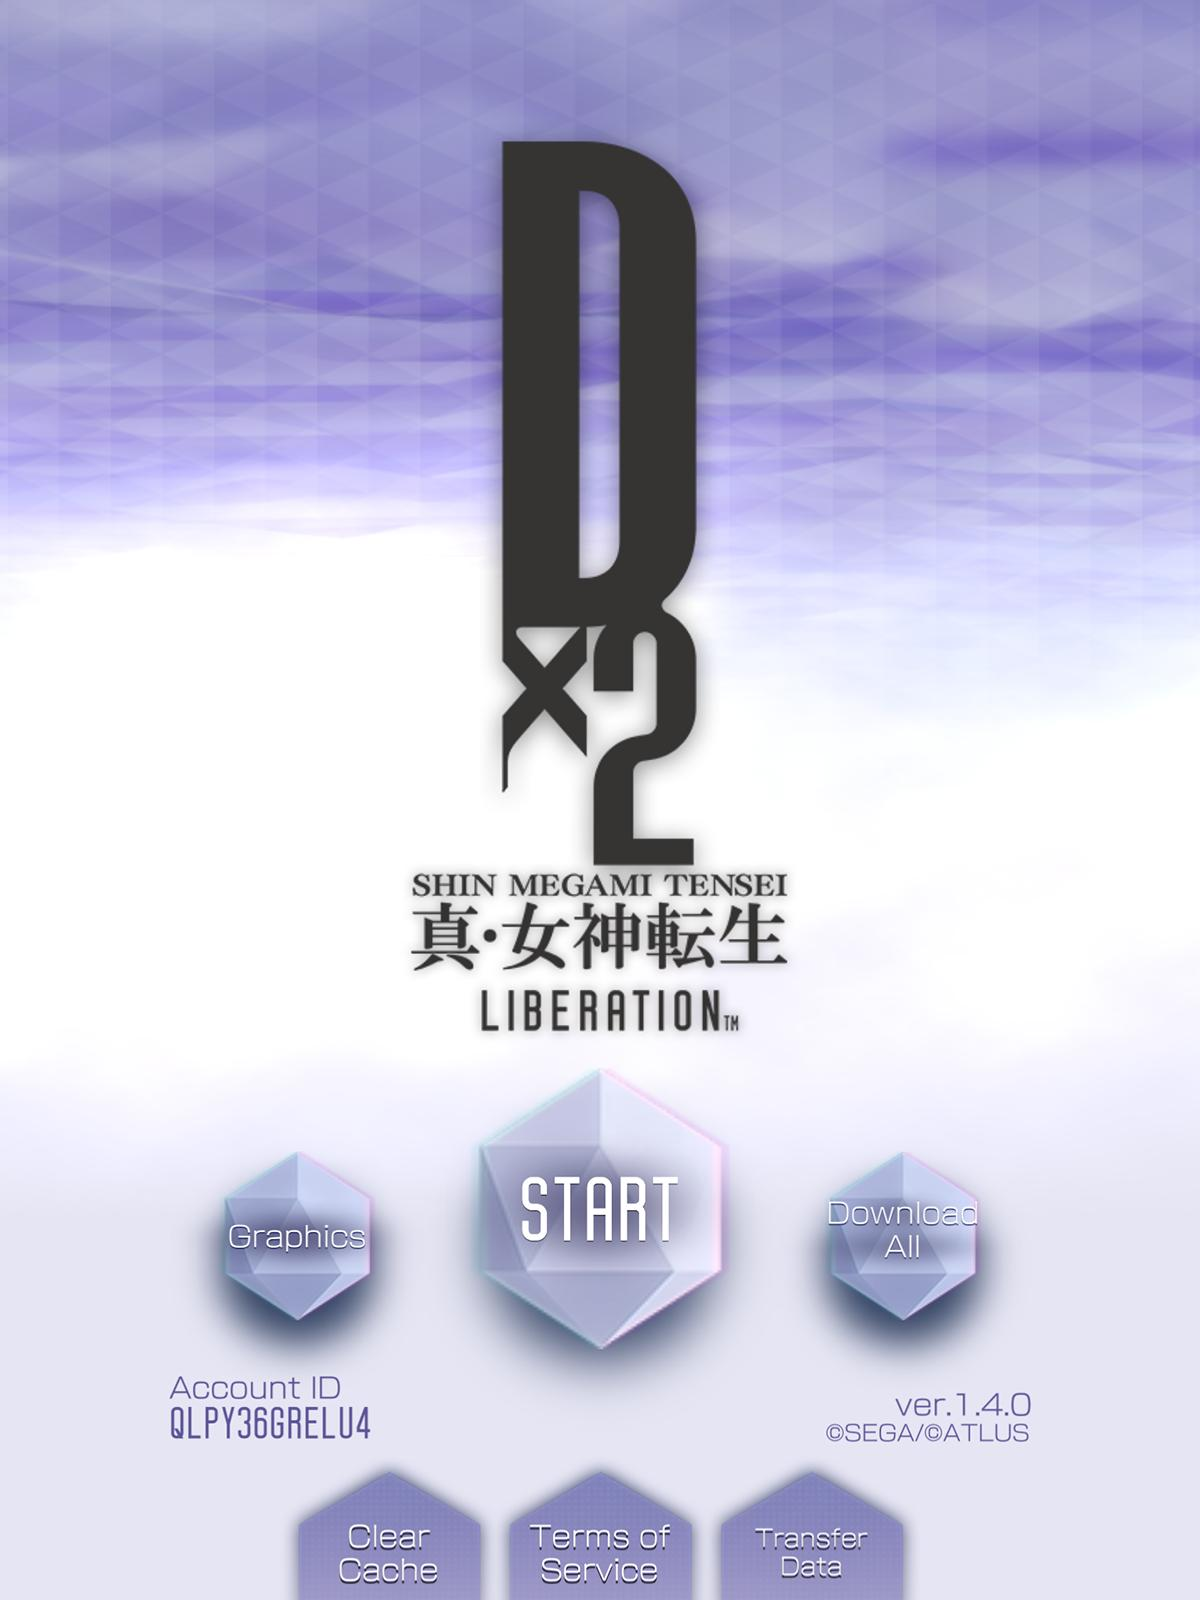 Shin Megami Tensei Liberation Dx2 review - Battle demons, anywhere you go